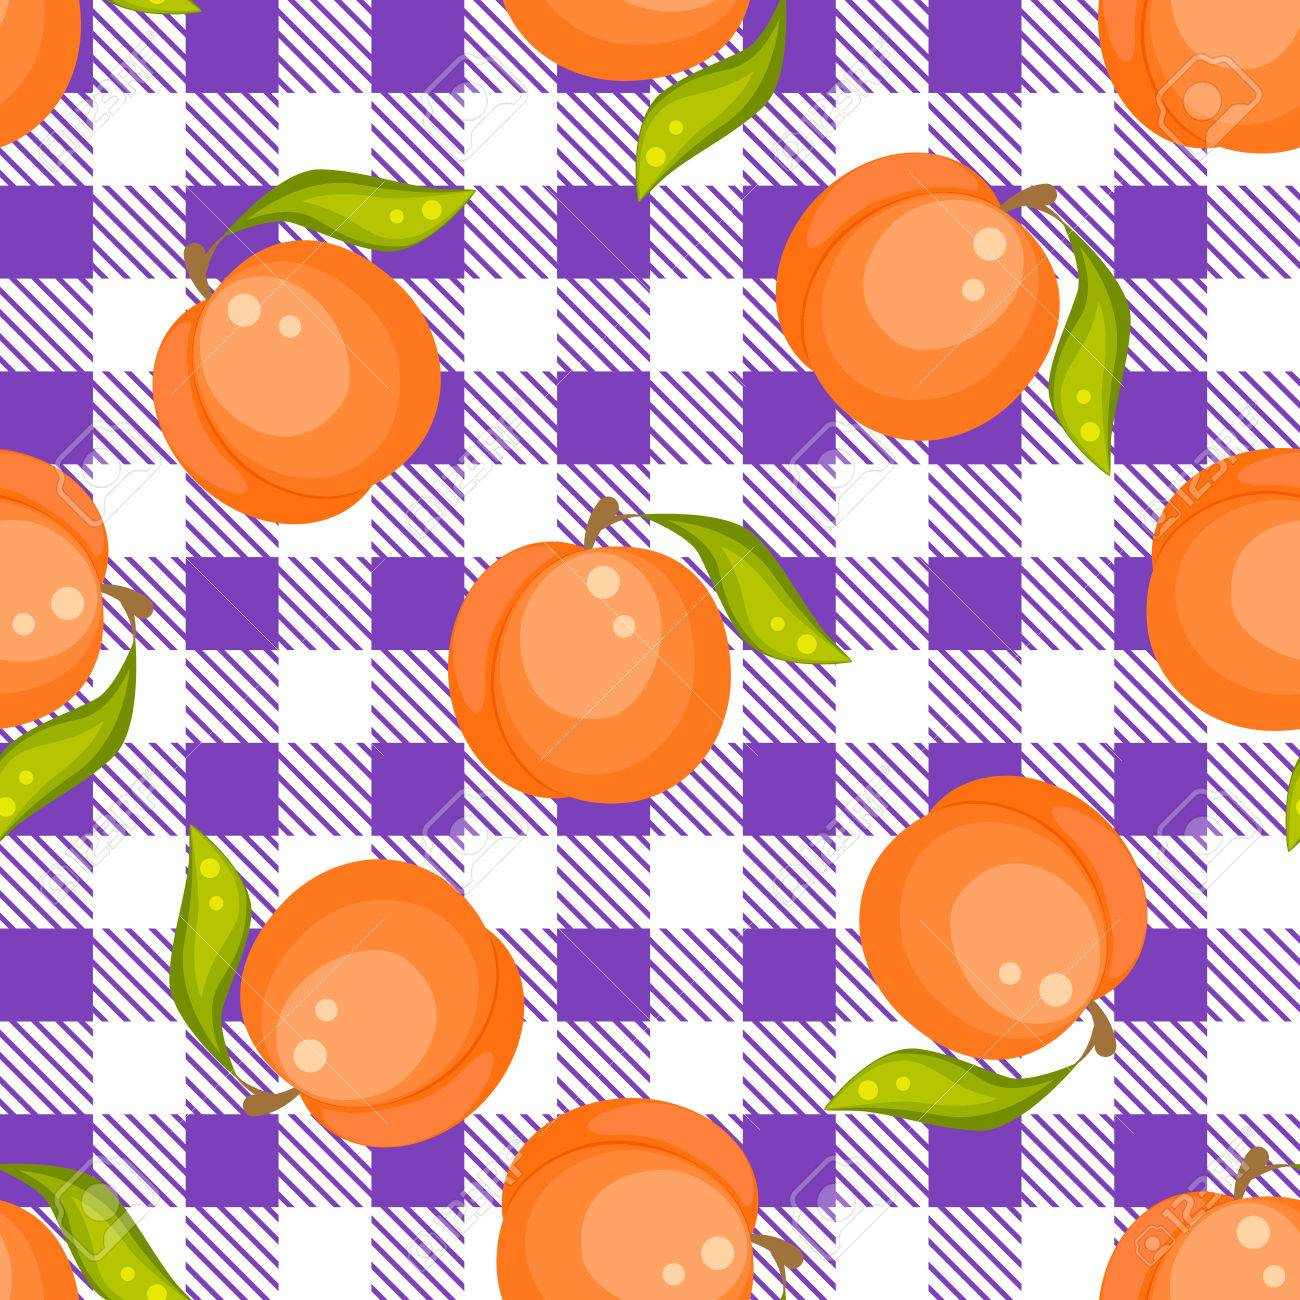 Tartan Plaid With Peaches Seamless Pattern. Kitchen Purple Checkered  Tablecloth Fabric Background. Stock Vector